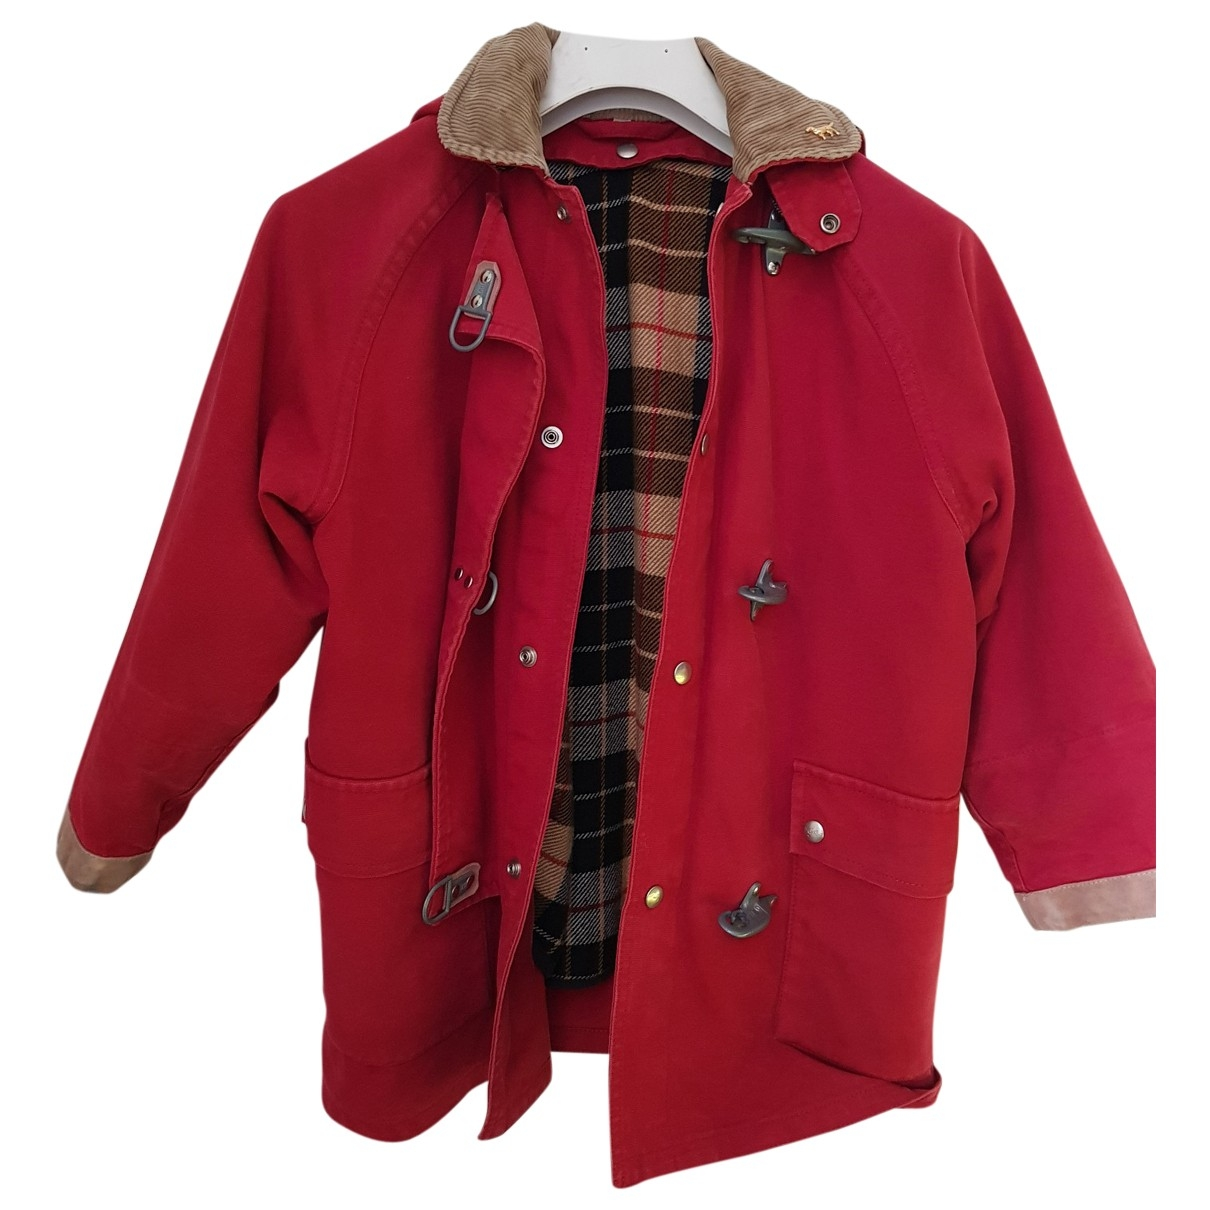 Fay \N Red Cotton jacket & coat for Kids 8 years - up to 128cm FR